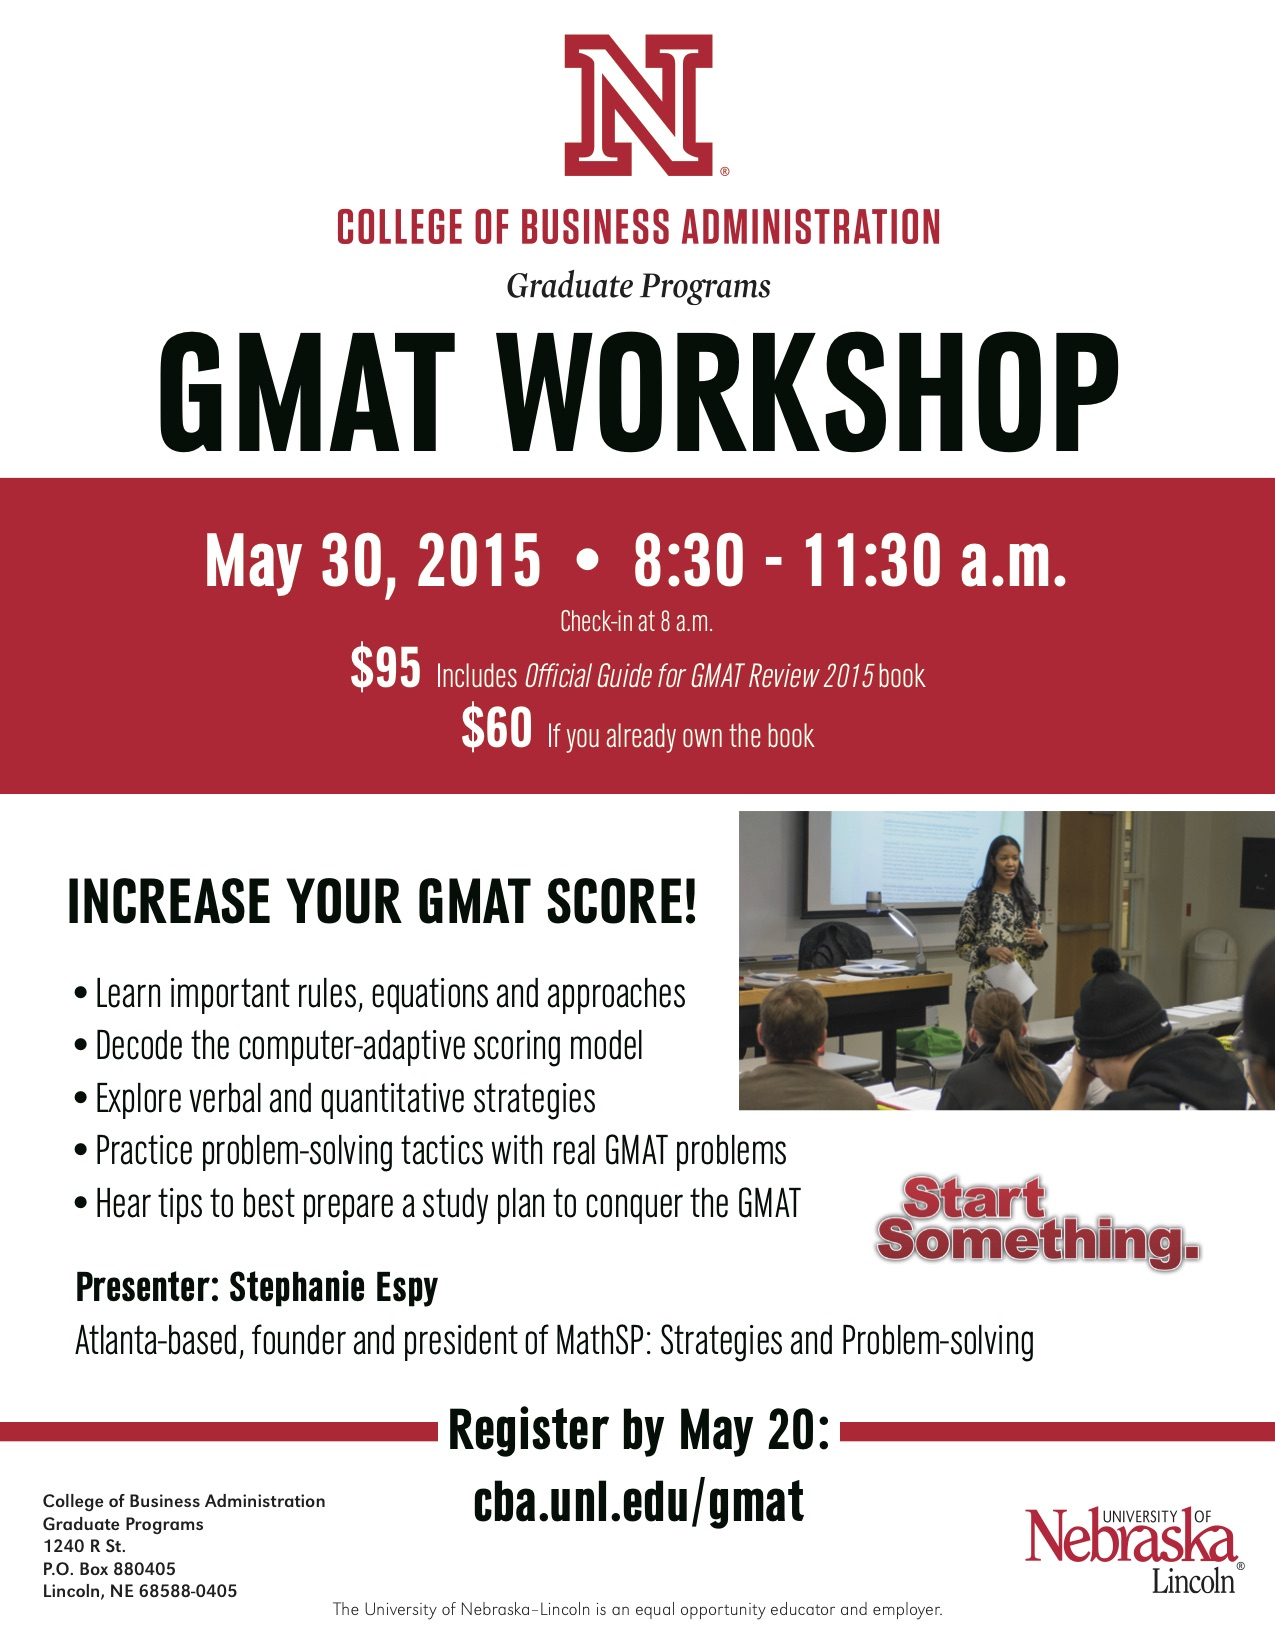 GMAT Workshop flyer